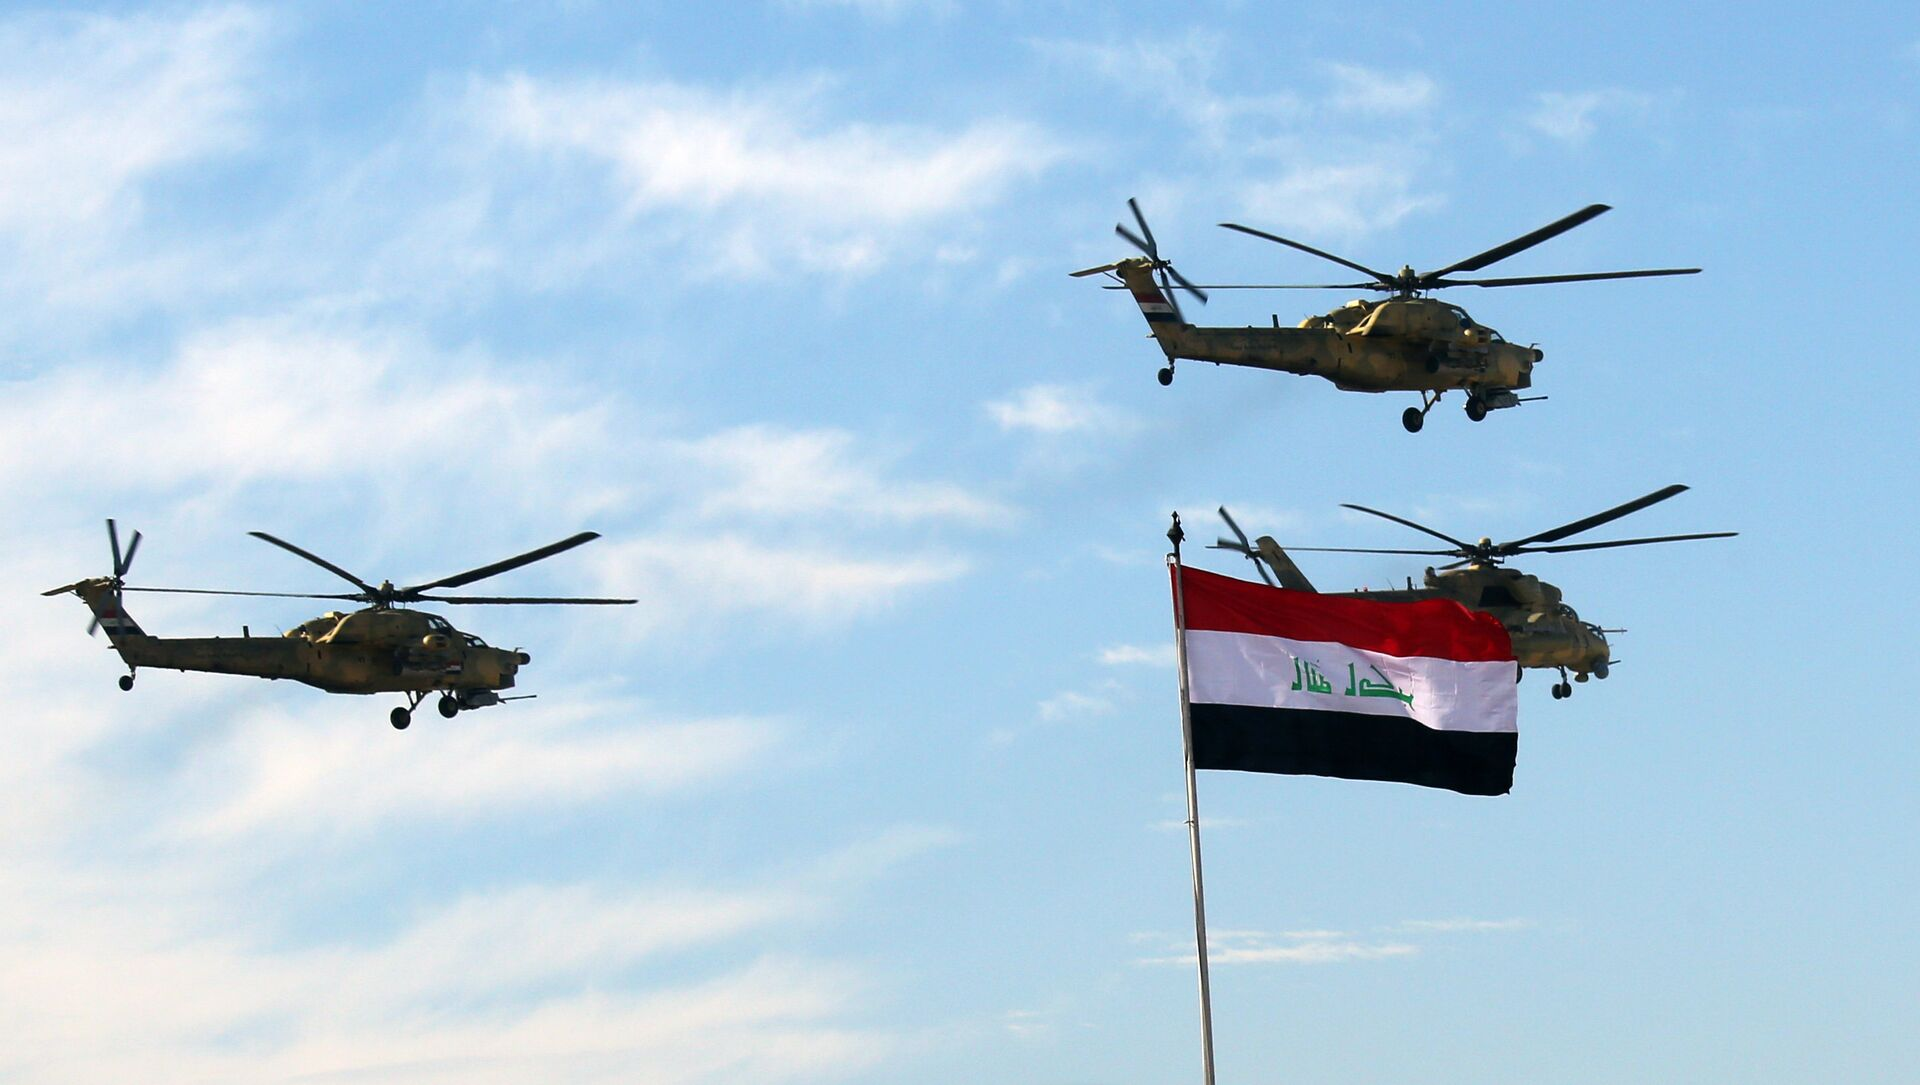 Iraqi Army helicopters fly in formation during the Army Day celebrations in Baghdad, Iraq, Tuesday, Jan. 6, 2015 - Sputnik International, 1920, 29.07.2021